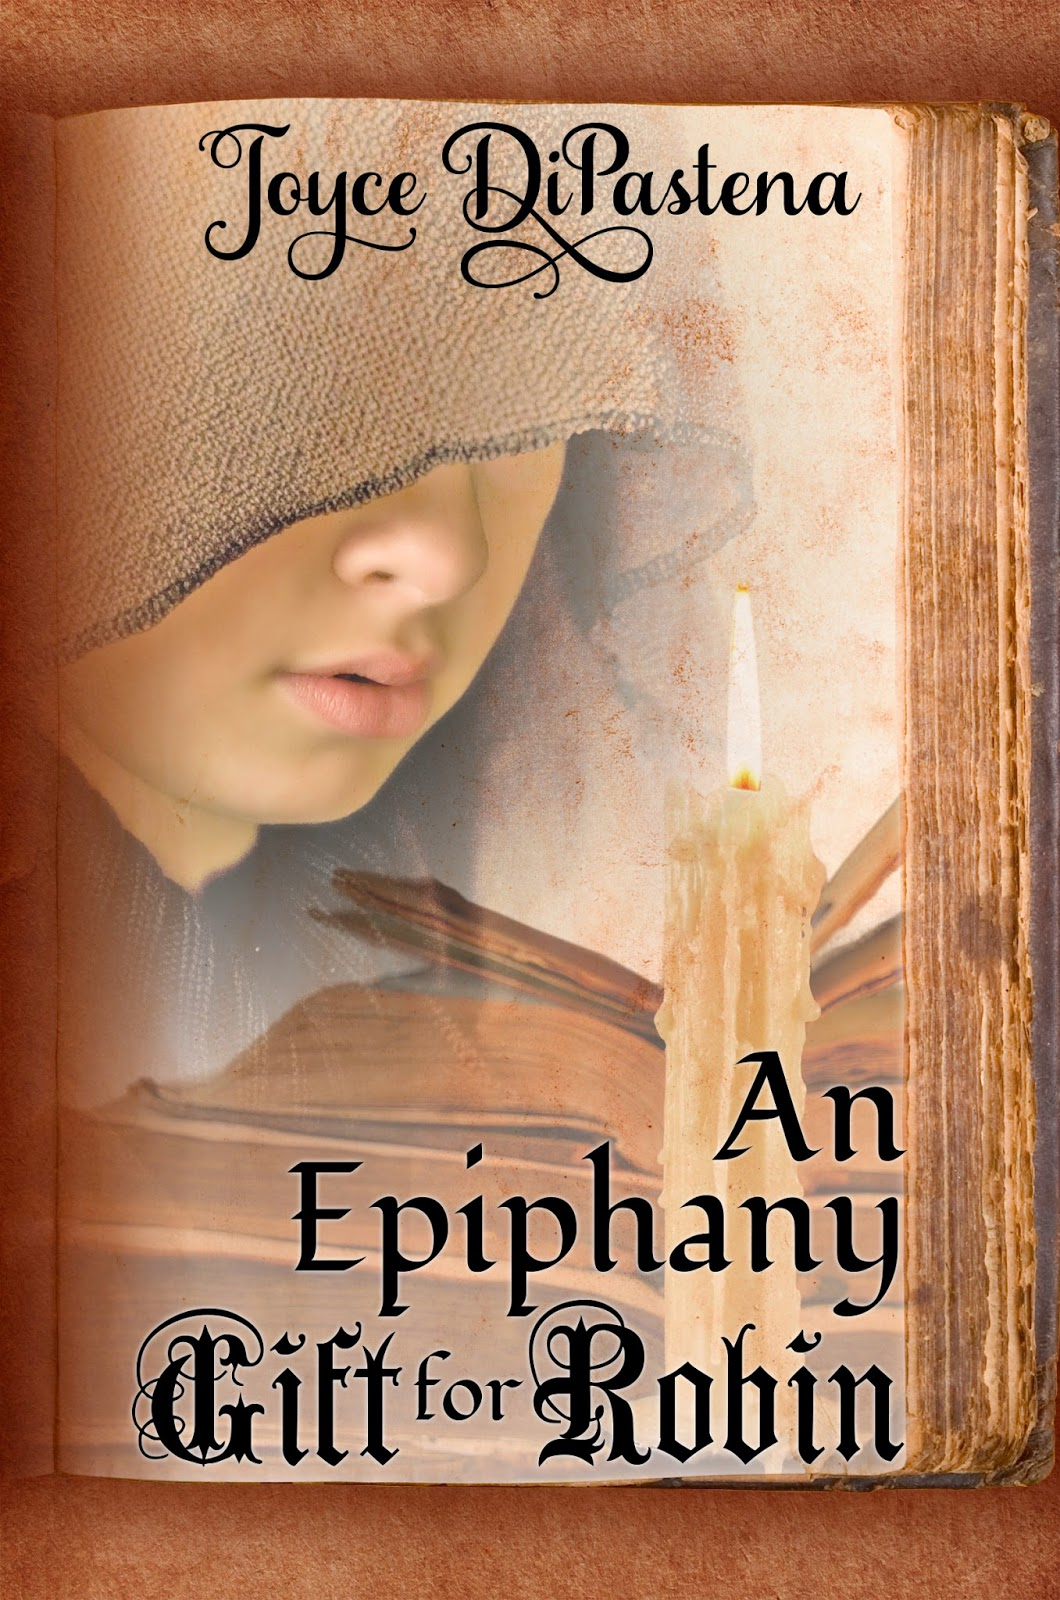 An Epiphany Gift for Robin by Joyce DiPastena